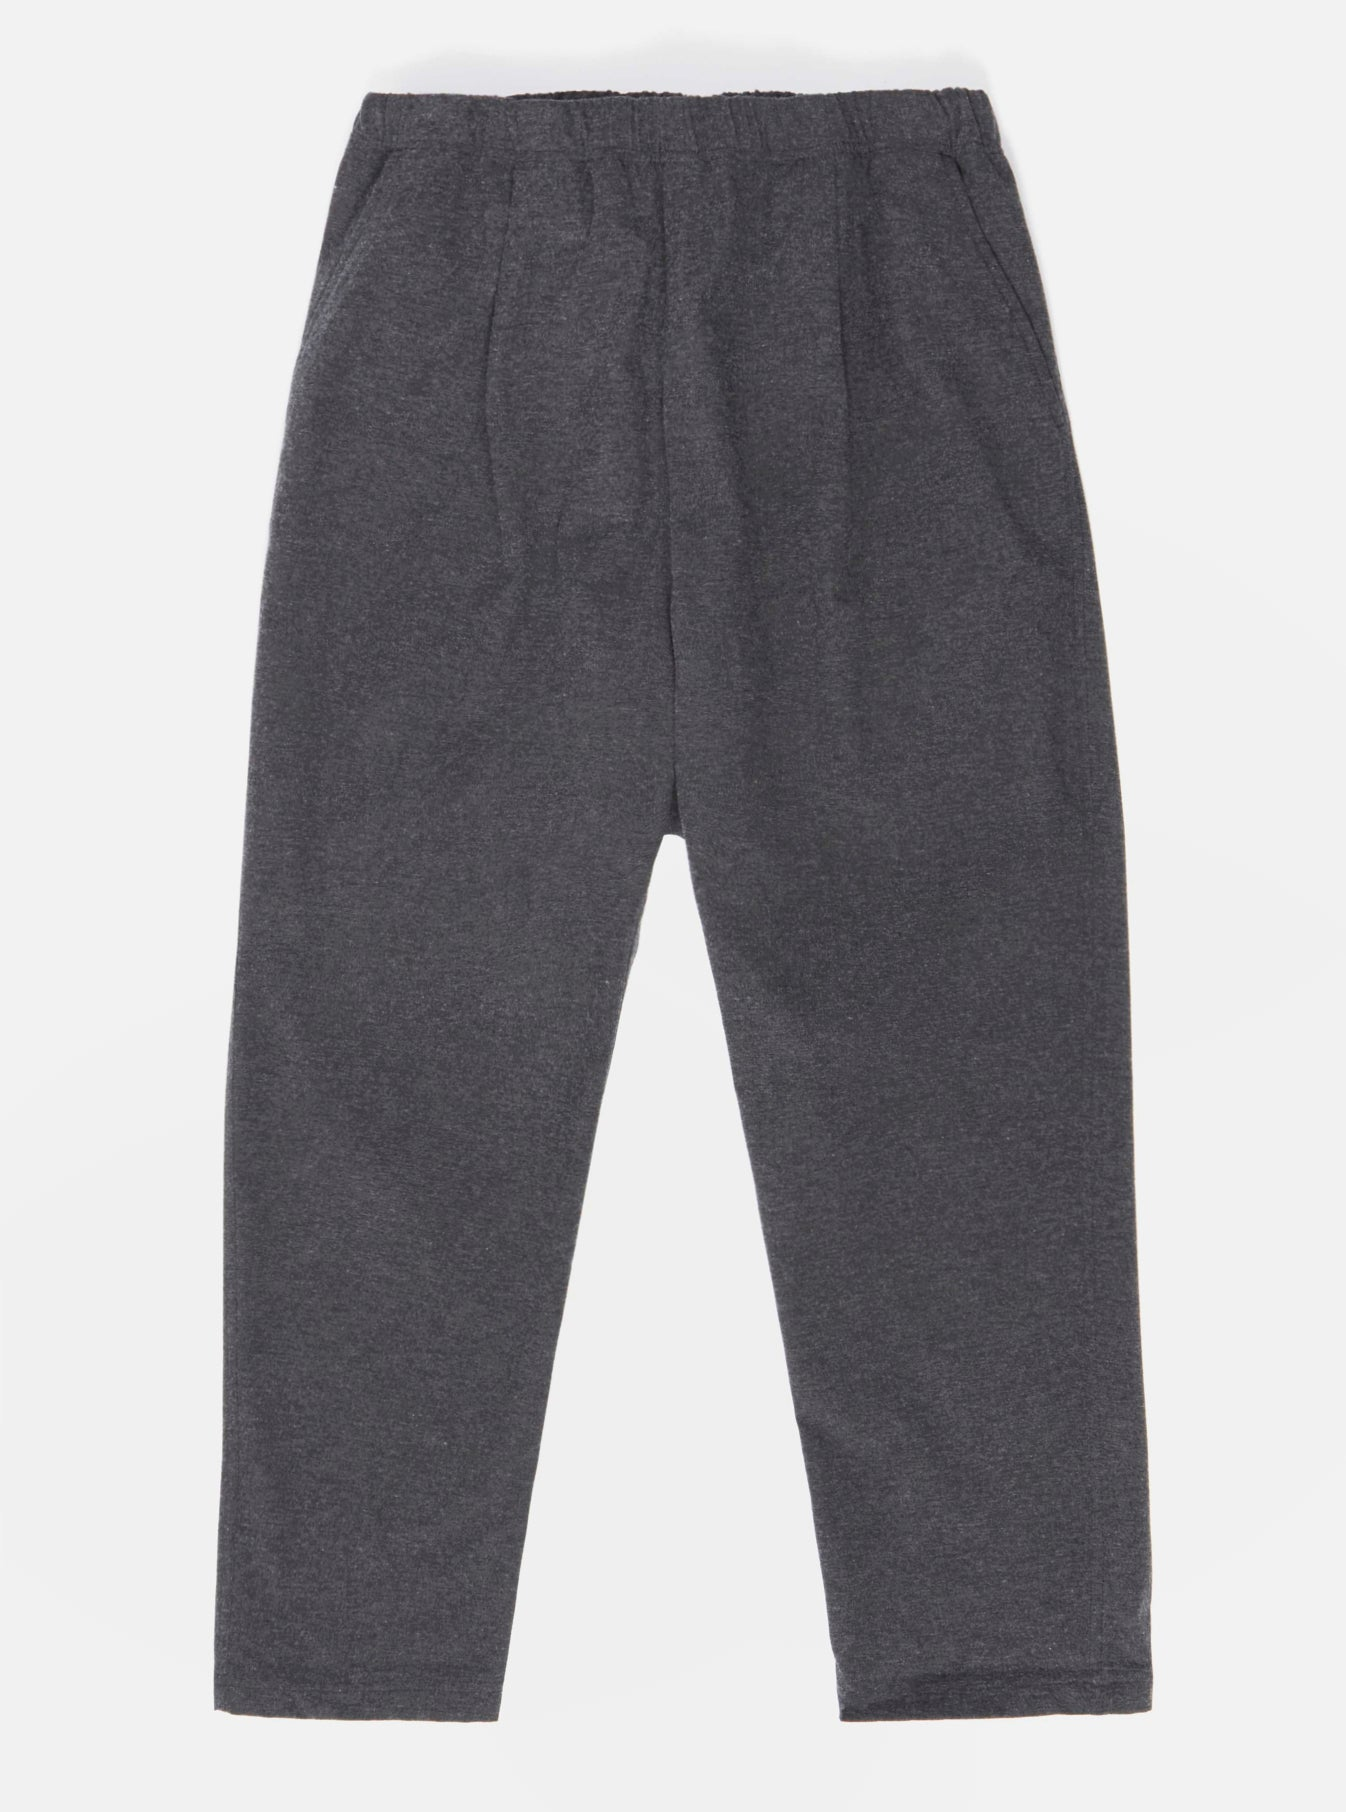 Universal Works Kyoto Work Pant in Grey Italian Cotton/Wool Mix